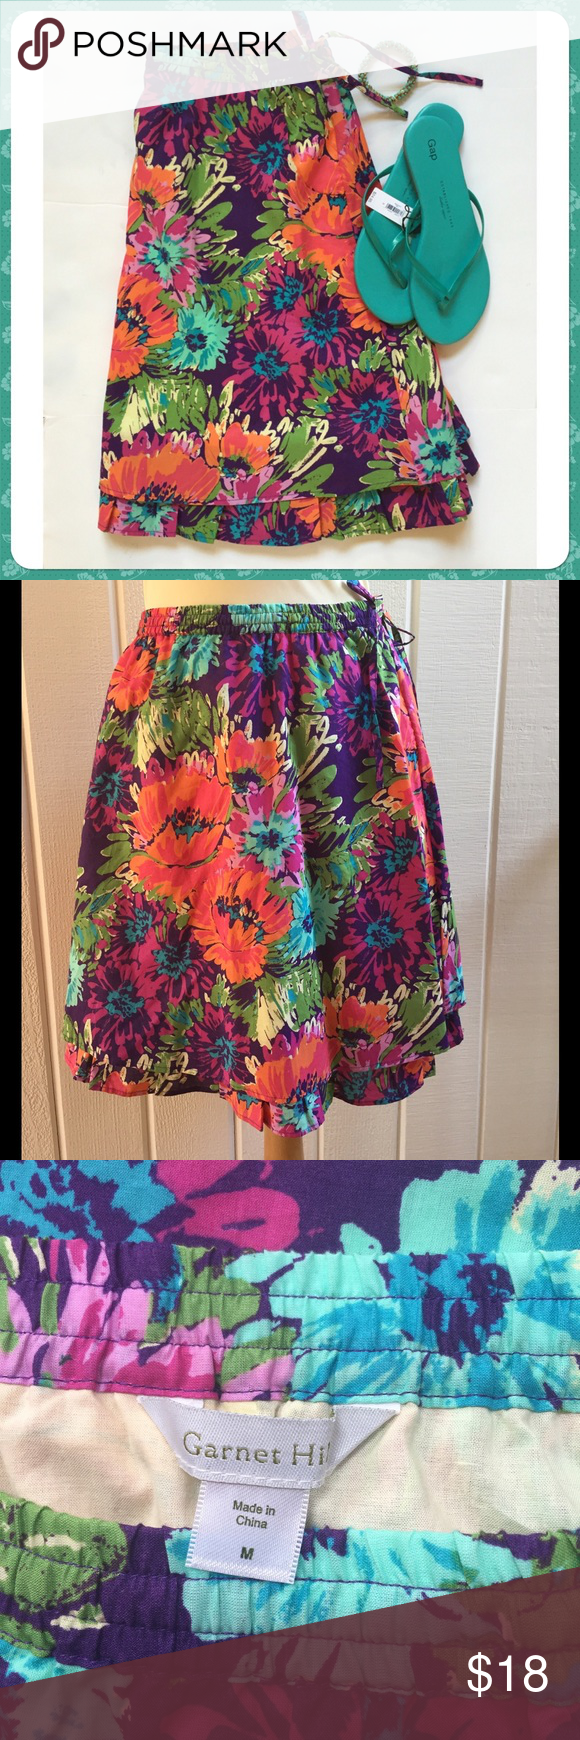 Purple Floral Cotton Skirt by Garnet Hill NWOT. Fully lined. Elastic waist with drawstring & side pockets. Excellent condition. Never worn. Comes from a smoke- and pet-free house. Bundle for additional savings! Garnet Hill Skirts A-Line or Full